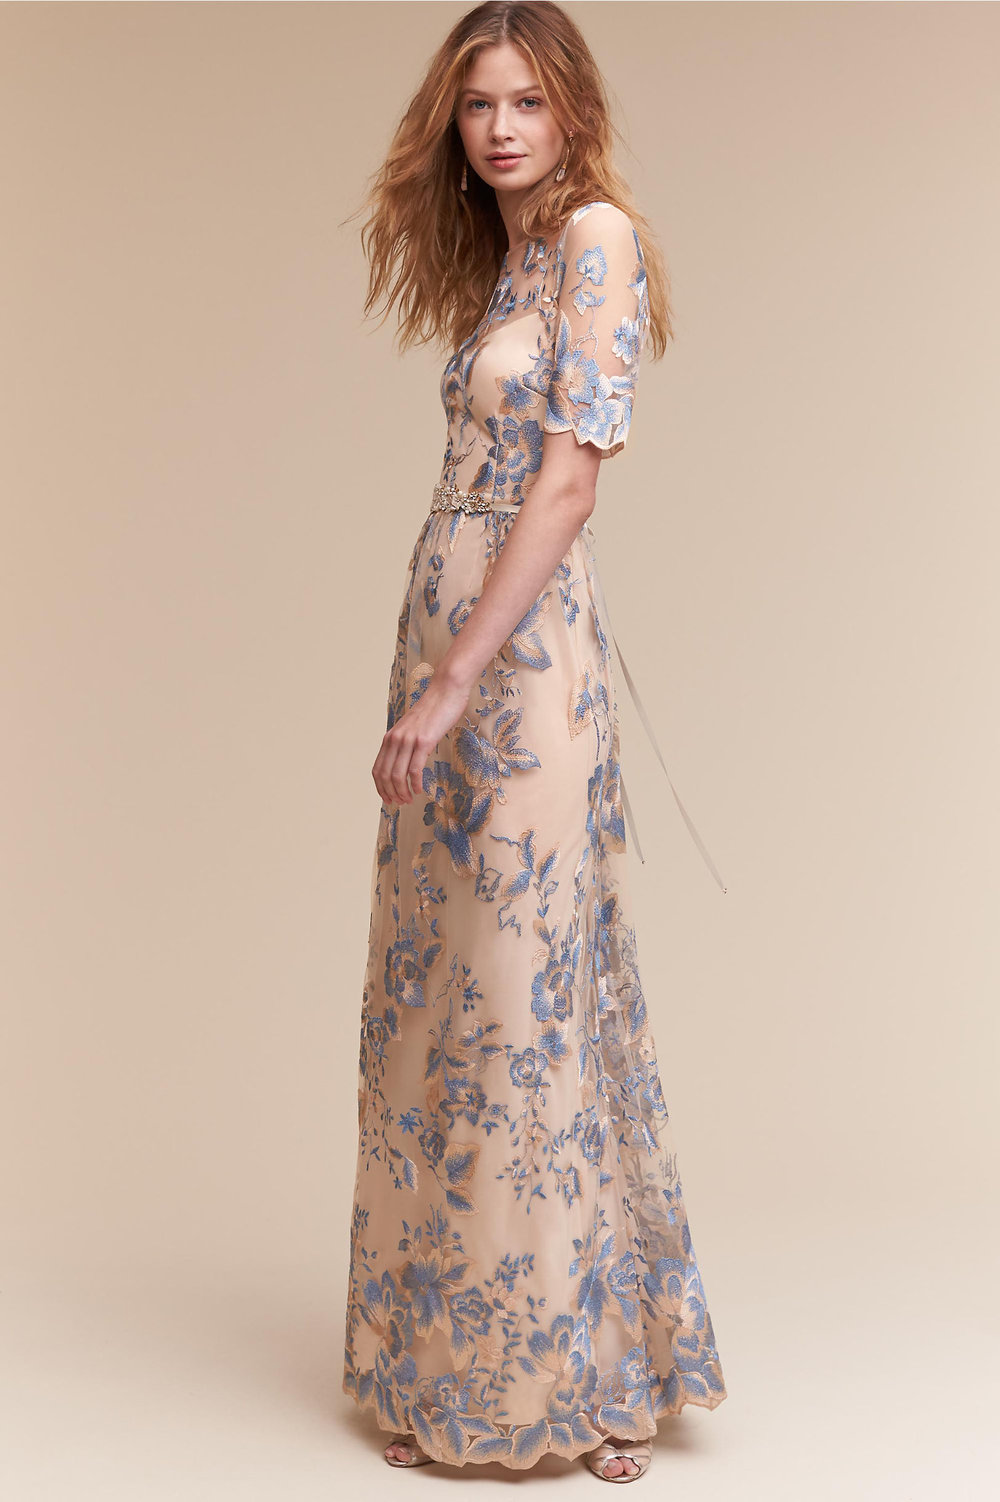 Gulia Dress - Back to BHLDN, because they seriously have some amazing wedding buys and I legit cannot believe this dress is budget friendly. Limited sizes are available, so you'll have to move quickly, but with blue florals and metallic gold thread, this buy was too good to leave off the list.Price: Retail $230, now just $140